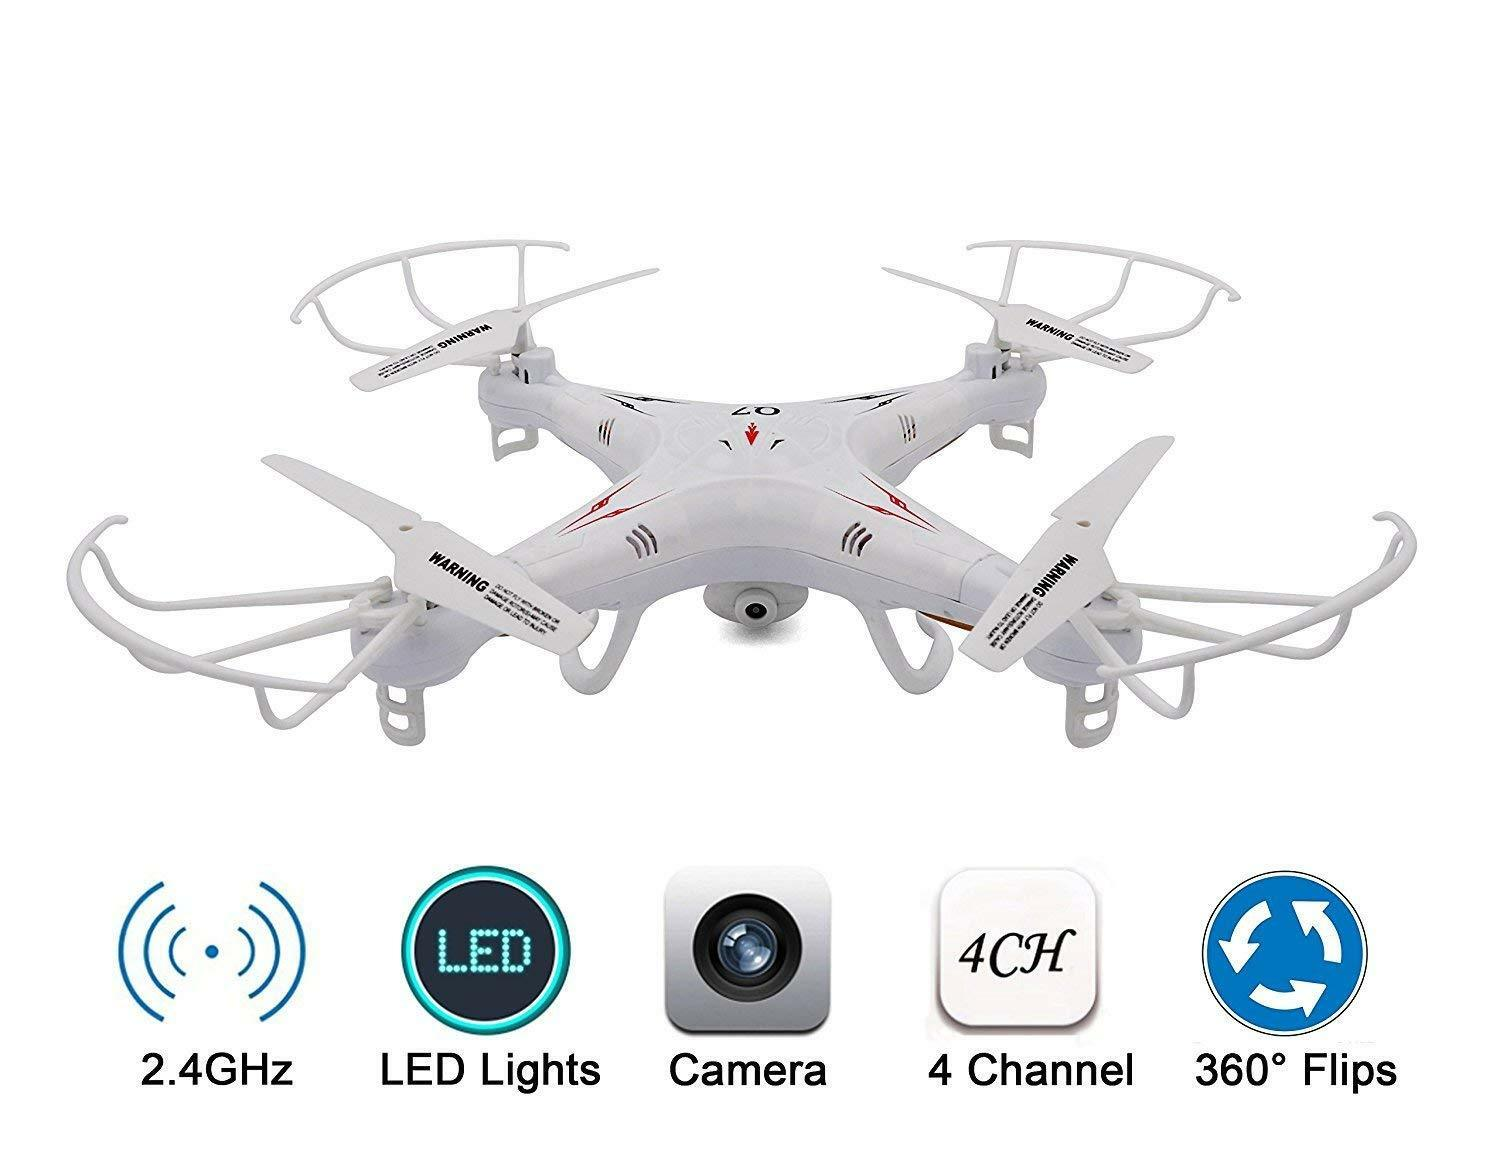 KELIWOW 2.4GHz 4CH 6-Axis Gyro RC Quadcopter Drone Explorers with Camera RTF Q7